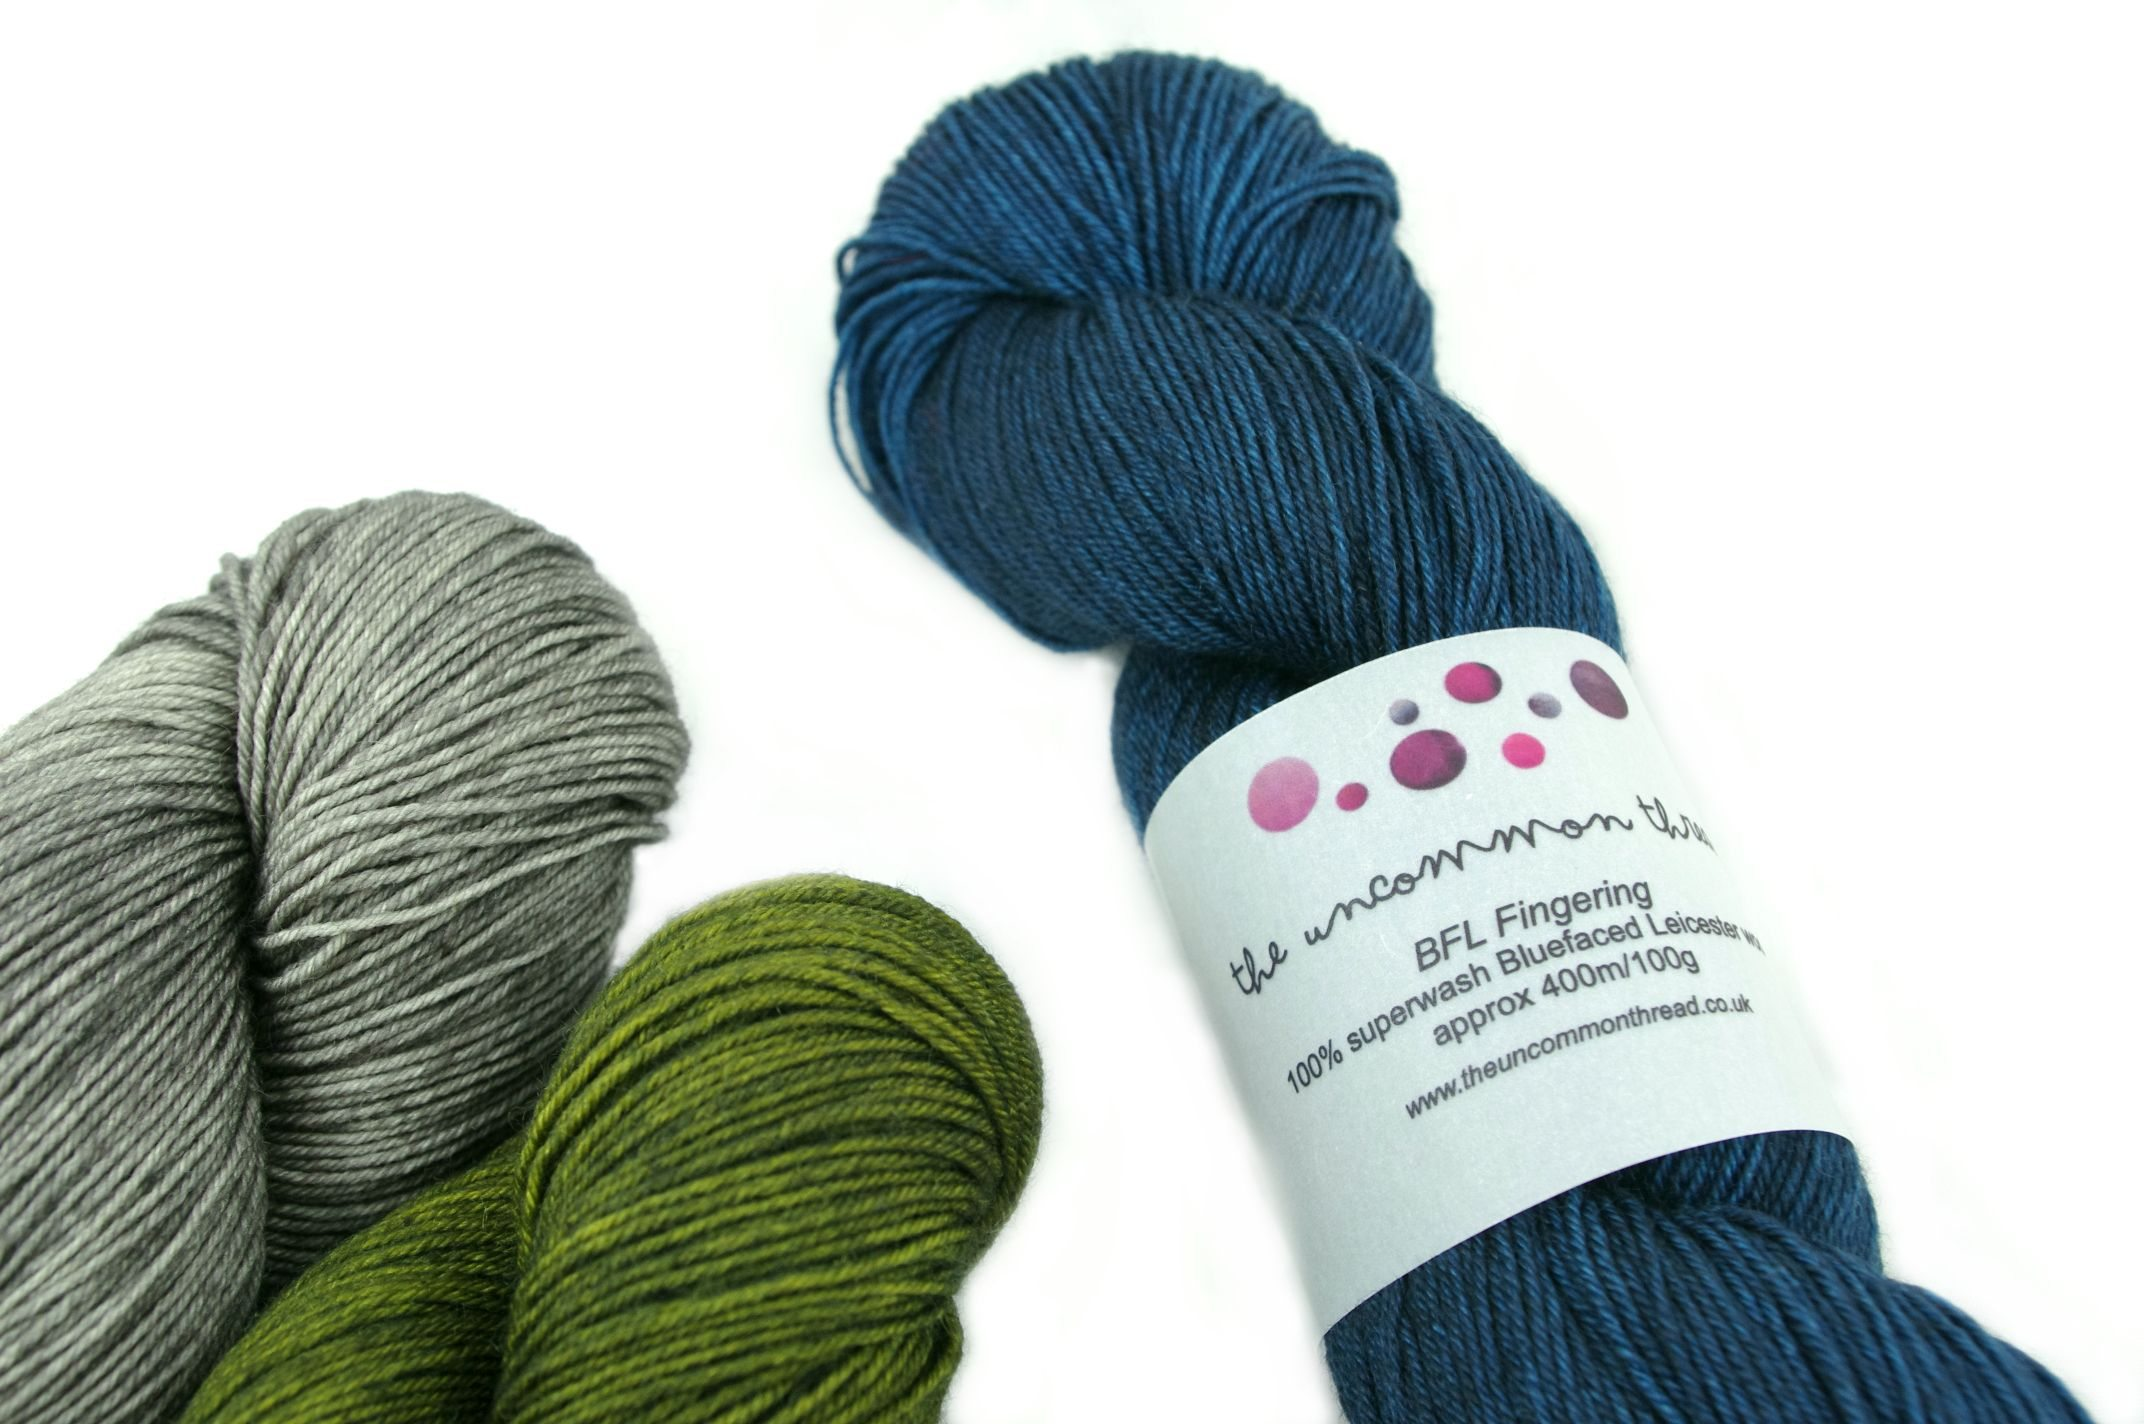 The Uncommon Thread BFL